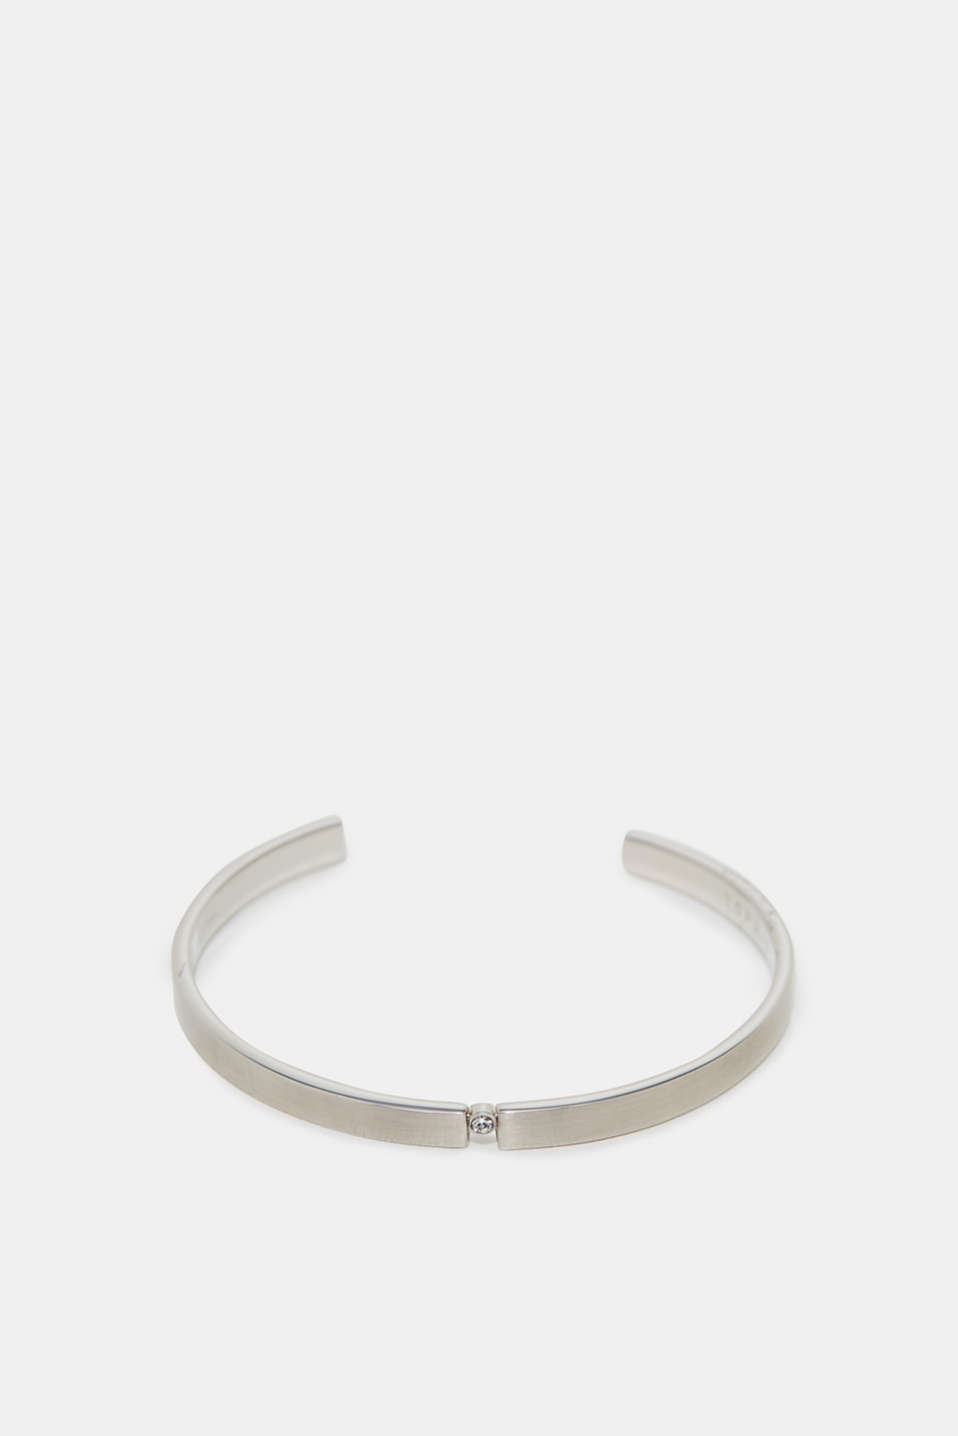 A minimalist design and single zirconia stone make this bangle an elegant piece of jewellery.